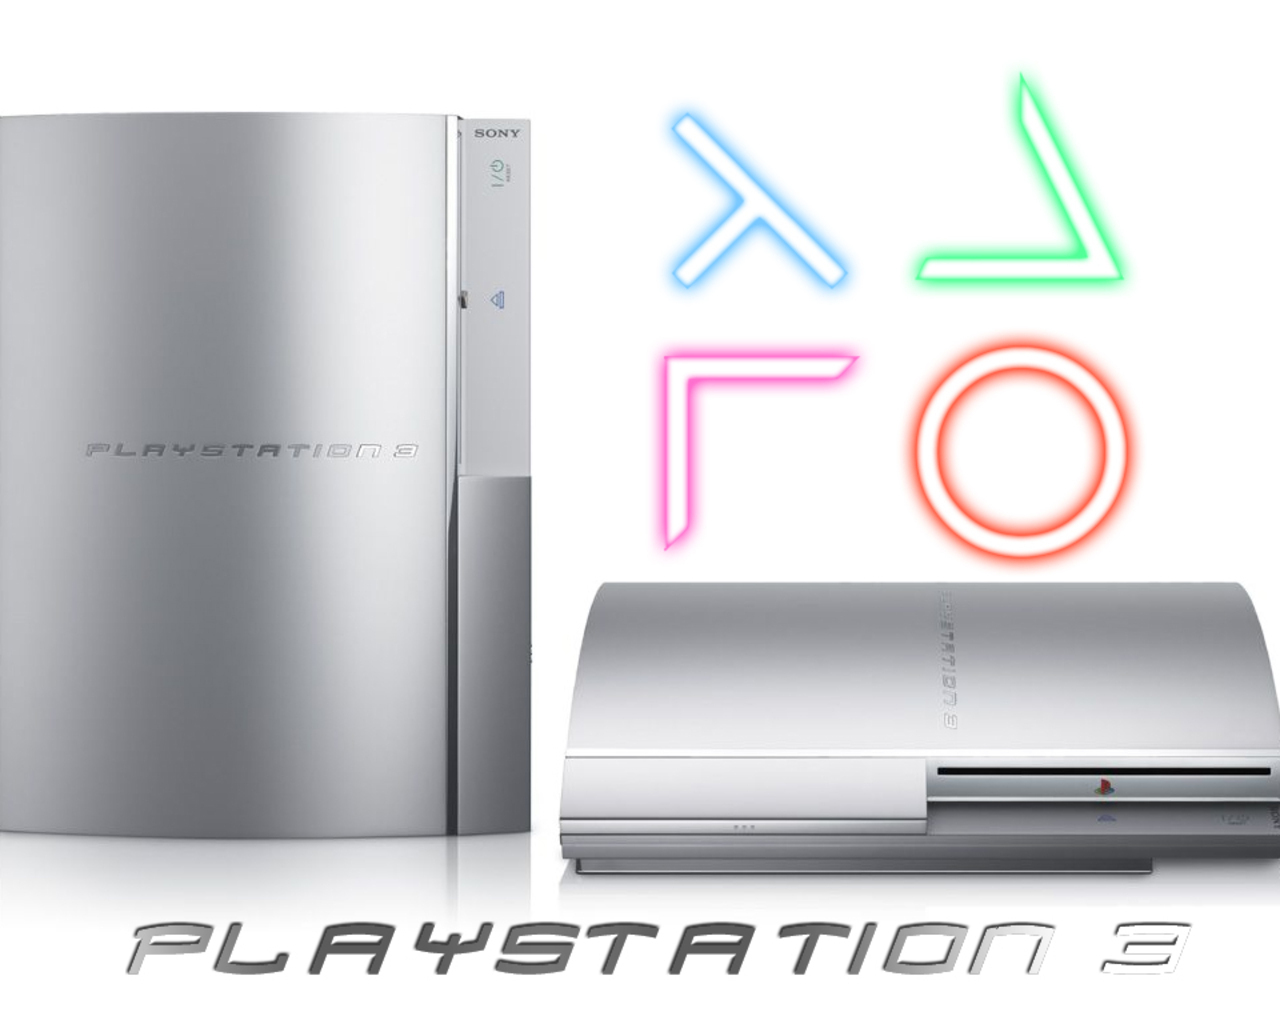 Playstation images silver ps3 hd wallpaper and background photos playstation images silver ps3 hd wallpaper and background photos voltagebd Gallery